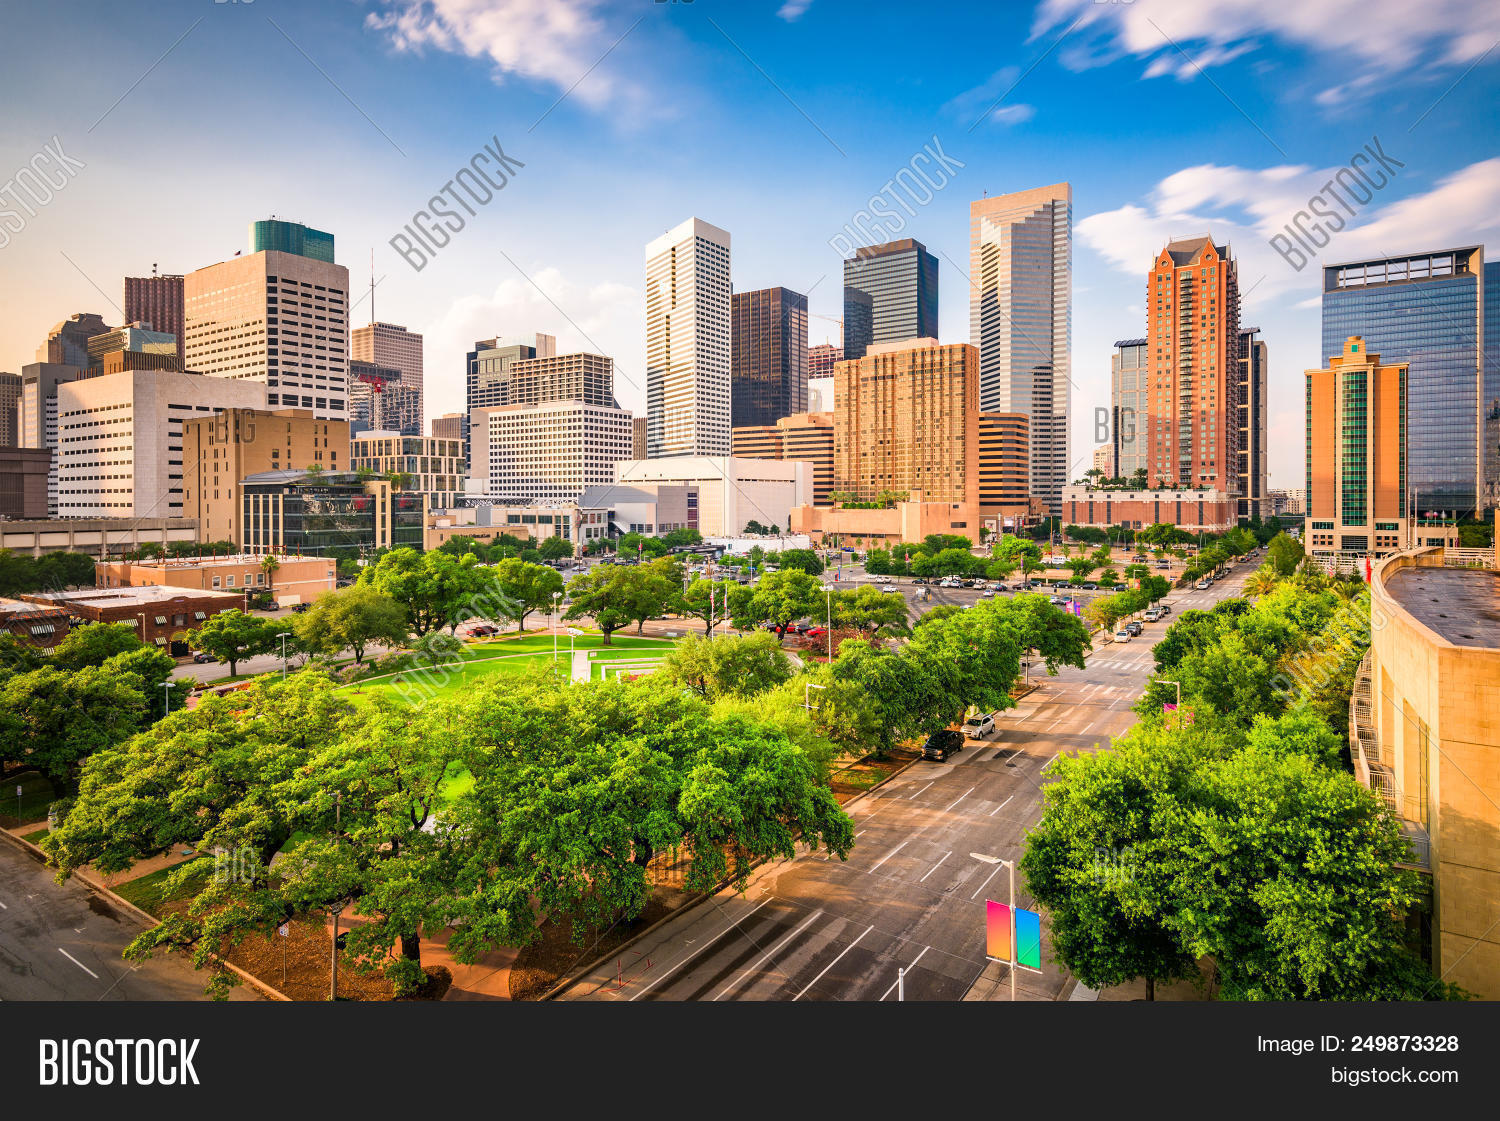 aerial,afternoon,america,american,apartments,architecture,buildings,business,city,cityscape,day,daytime,district,downtown,famous,financial,high rises,houston,landmark,landscape,location,metropolis,modern,offices,park,place,plaza,road,rooftop,root,scene,scenery,scenic,skyline,skyscrapers,south,southern,square,street,texas,tourism,town,townscape,travel,trees,tx,united states,urban,usa,view